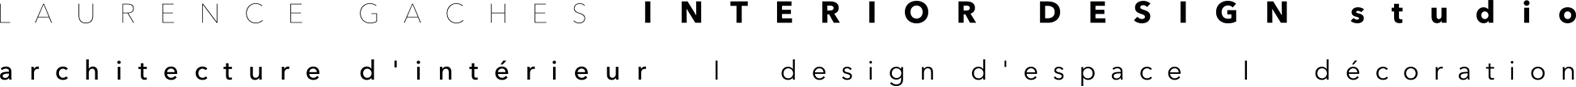 LG Interior Design Studio Logo